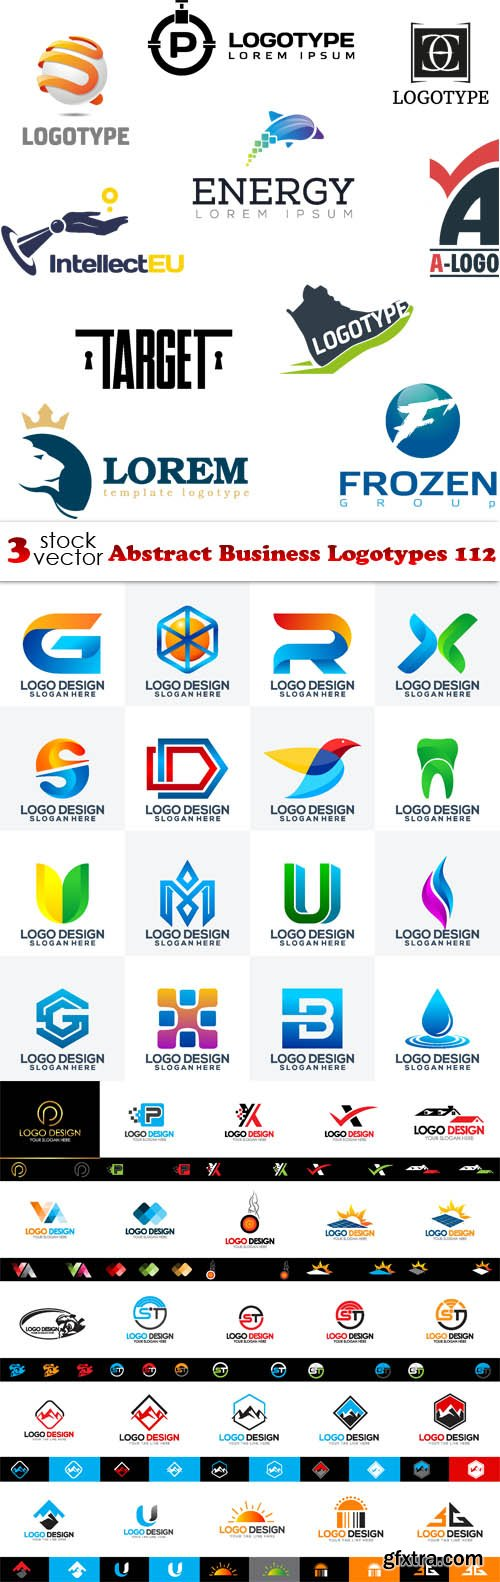 Vectors - Abstract Business Logotypes 112